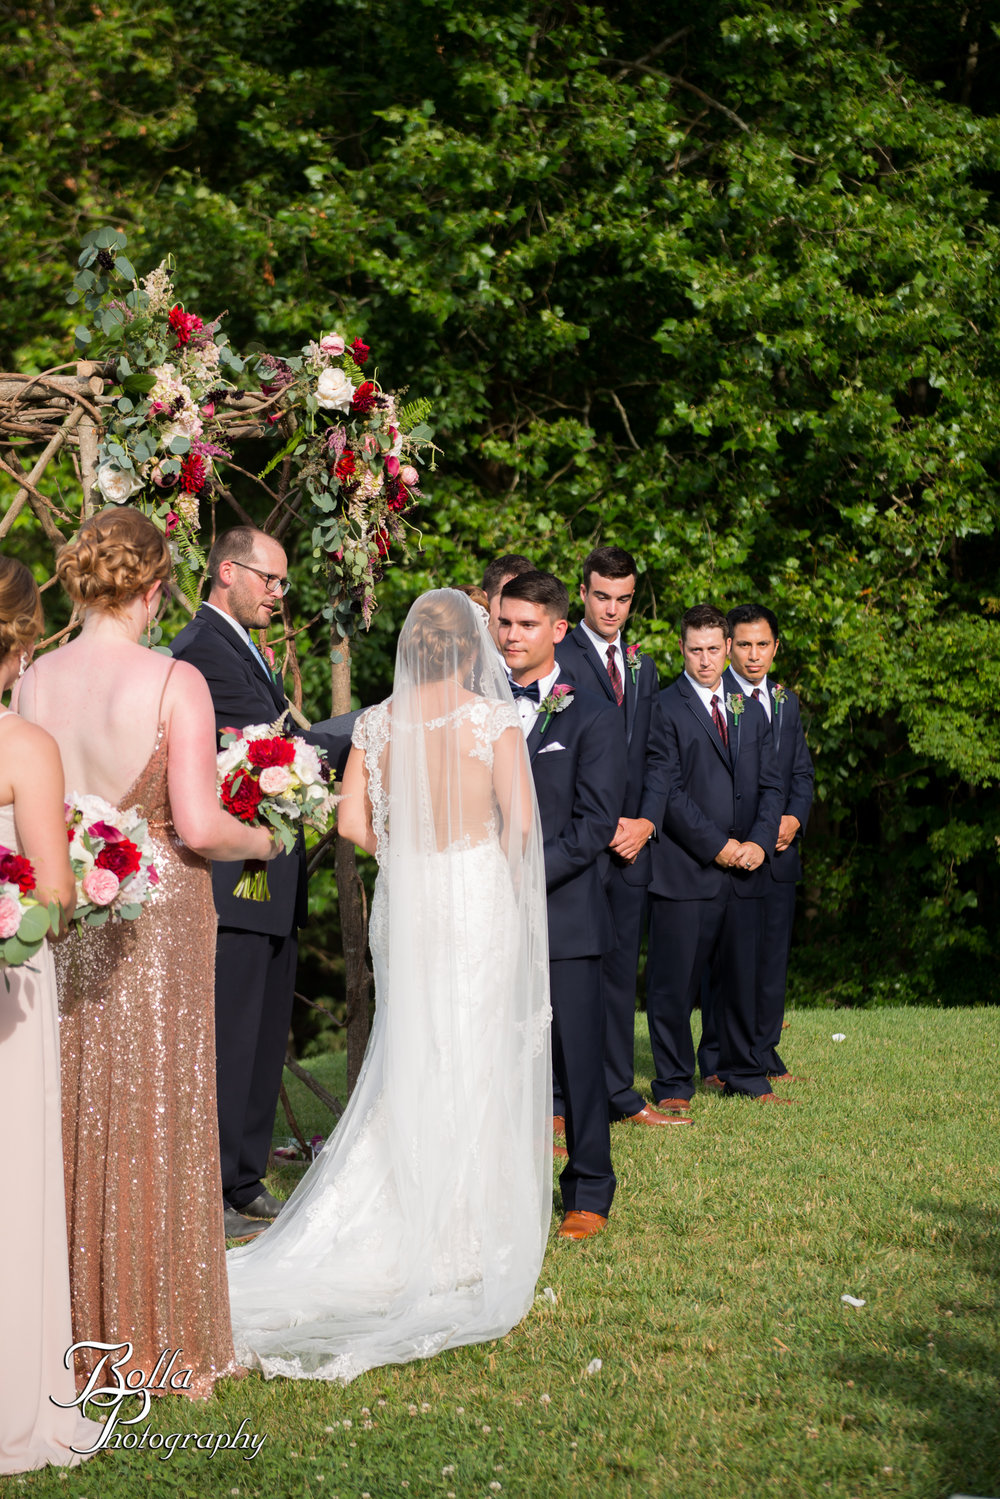 Bolla_photography_edwardsville_wedding_photographer_st_louis_weddings_Chaumette_winery_Mikusch-0396.jpg